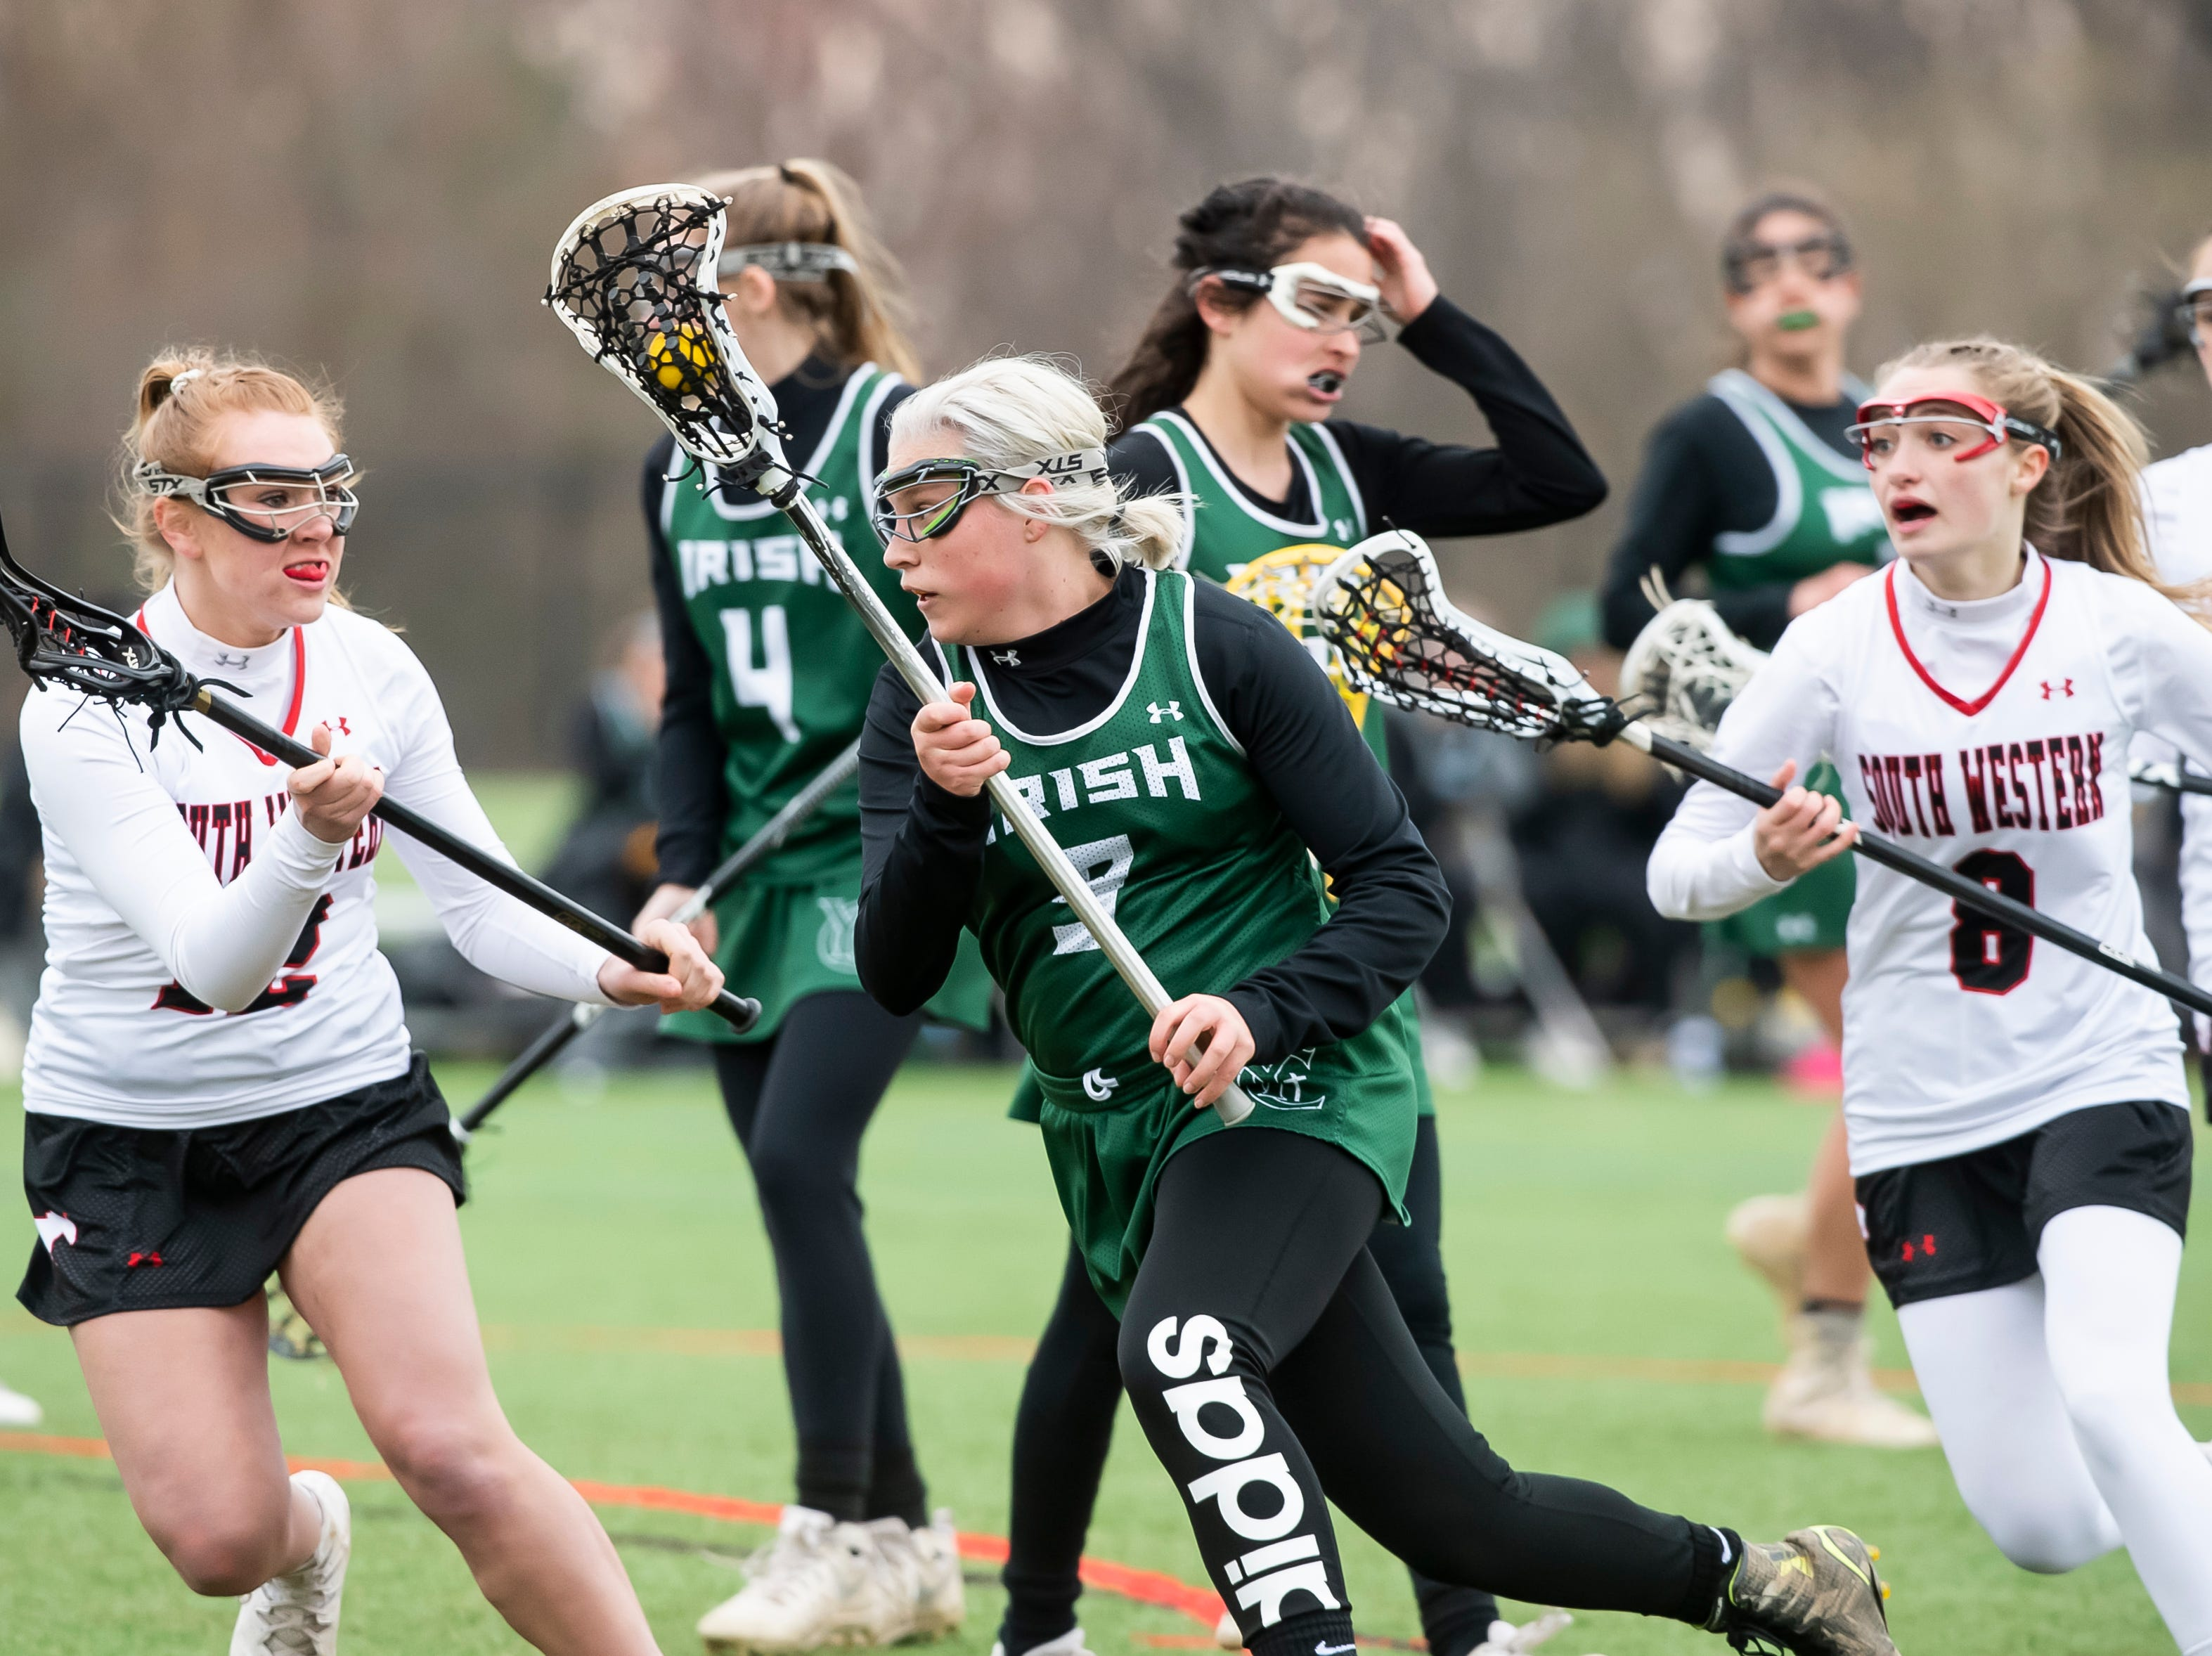 York Catholic's Kennedy Eckert controls the ball during a YAIAA lacrosse game against South Western in Hanover on Tuesday, April 2, 2019. York Catholic won 19-7 and improved to 5-0.